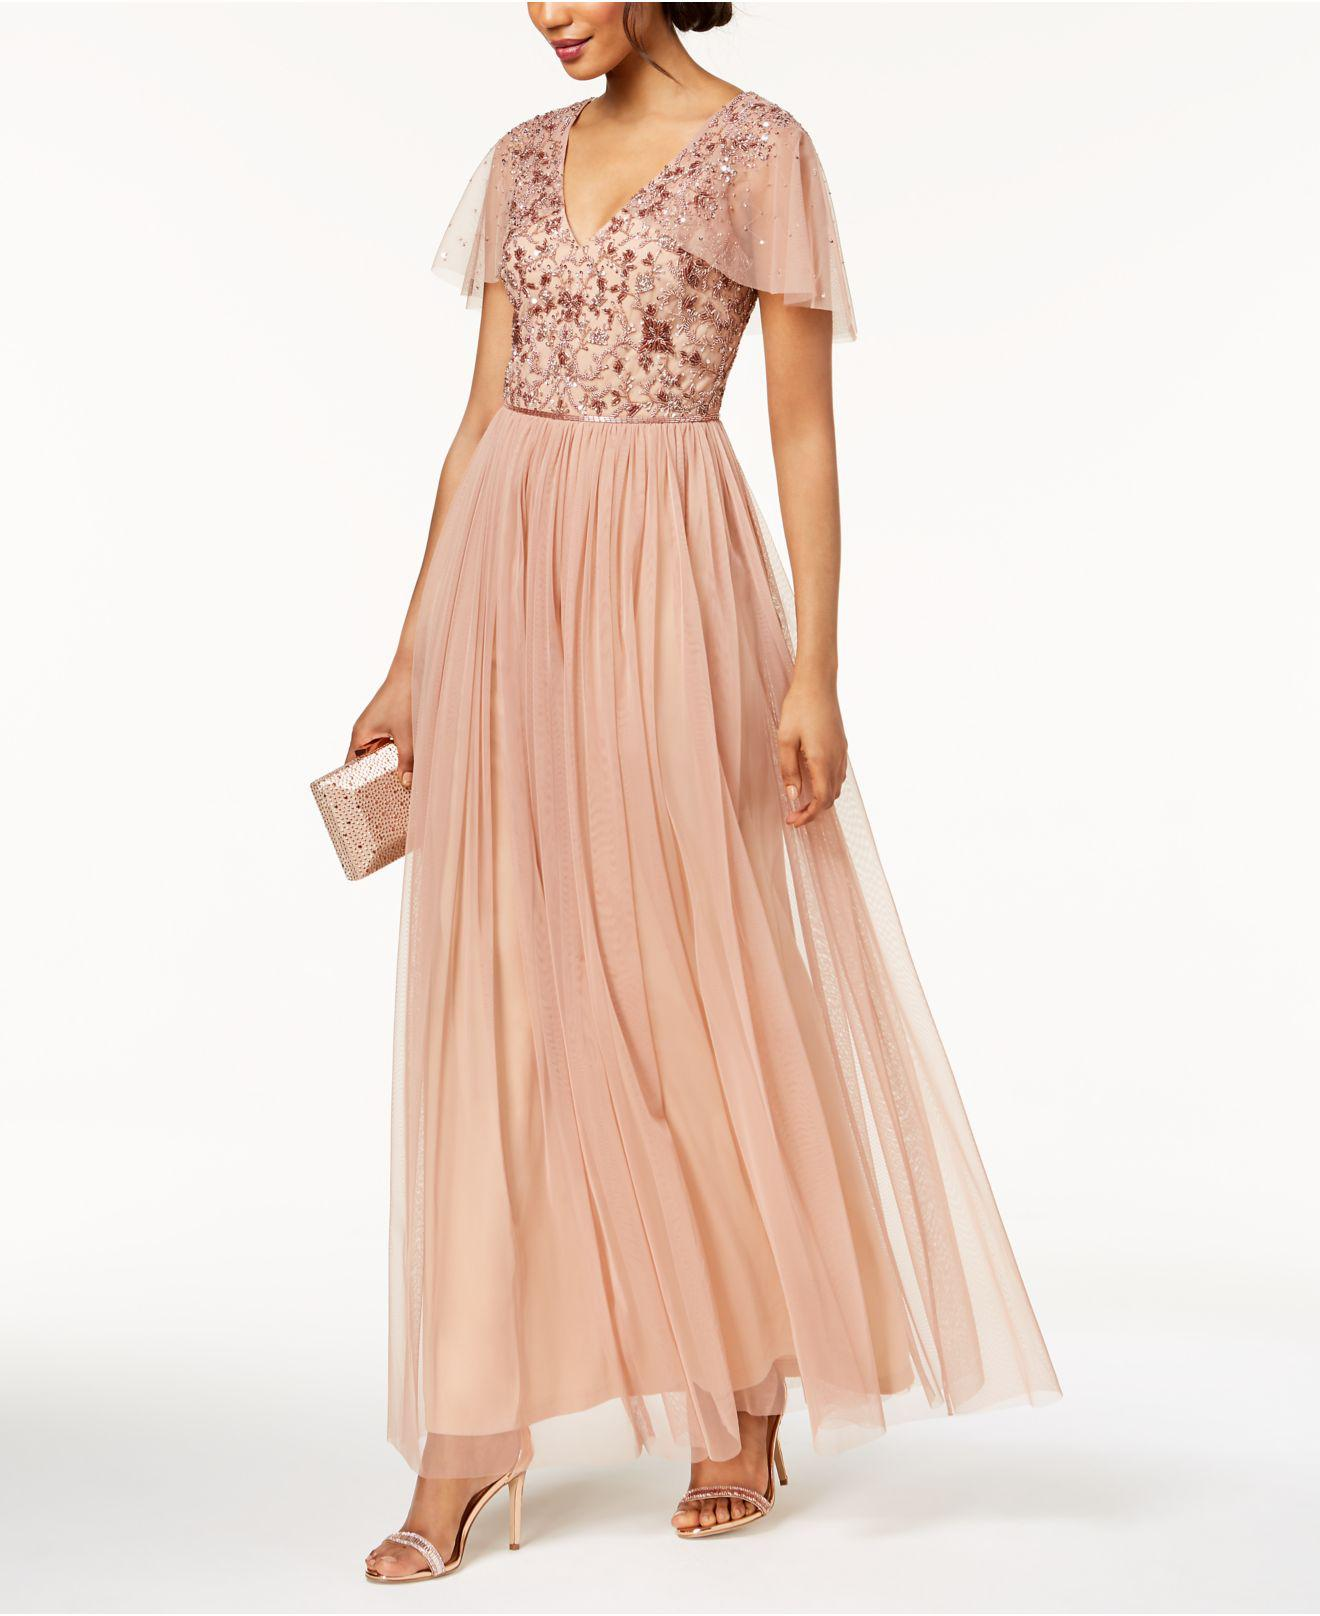 ba56dd2dcea8f Lyst - Adrianna Papell Beaded Cape Gown in Pink